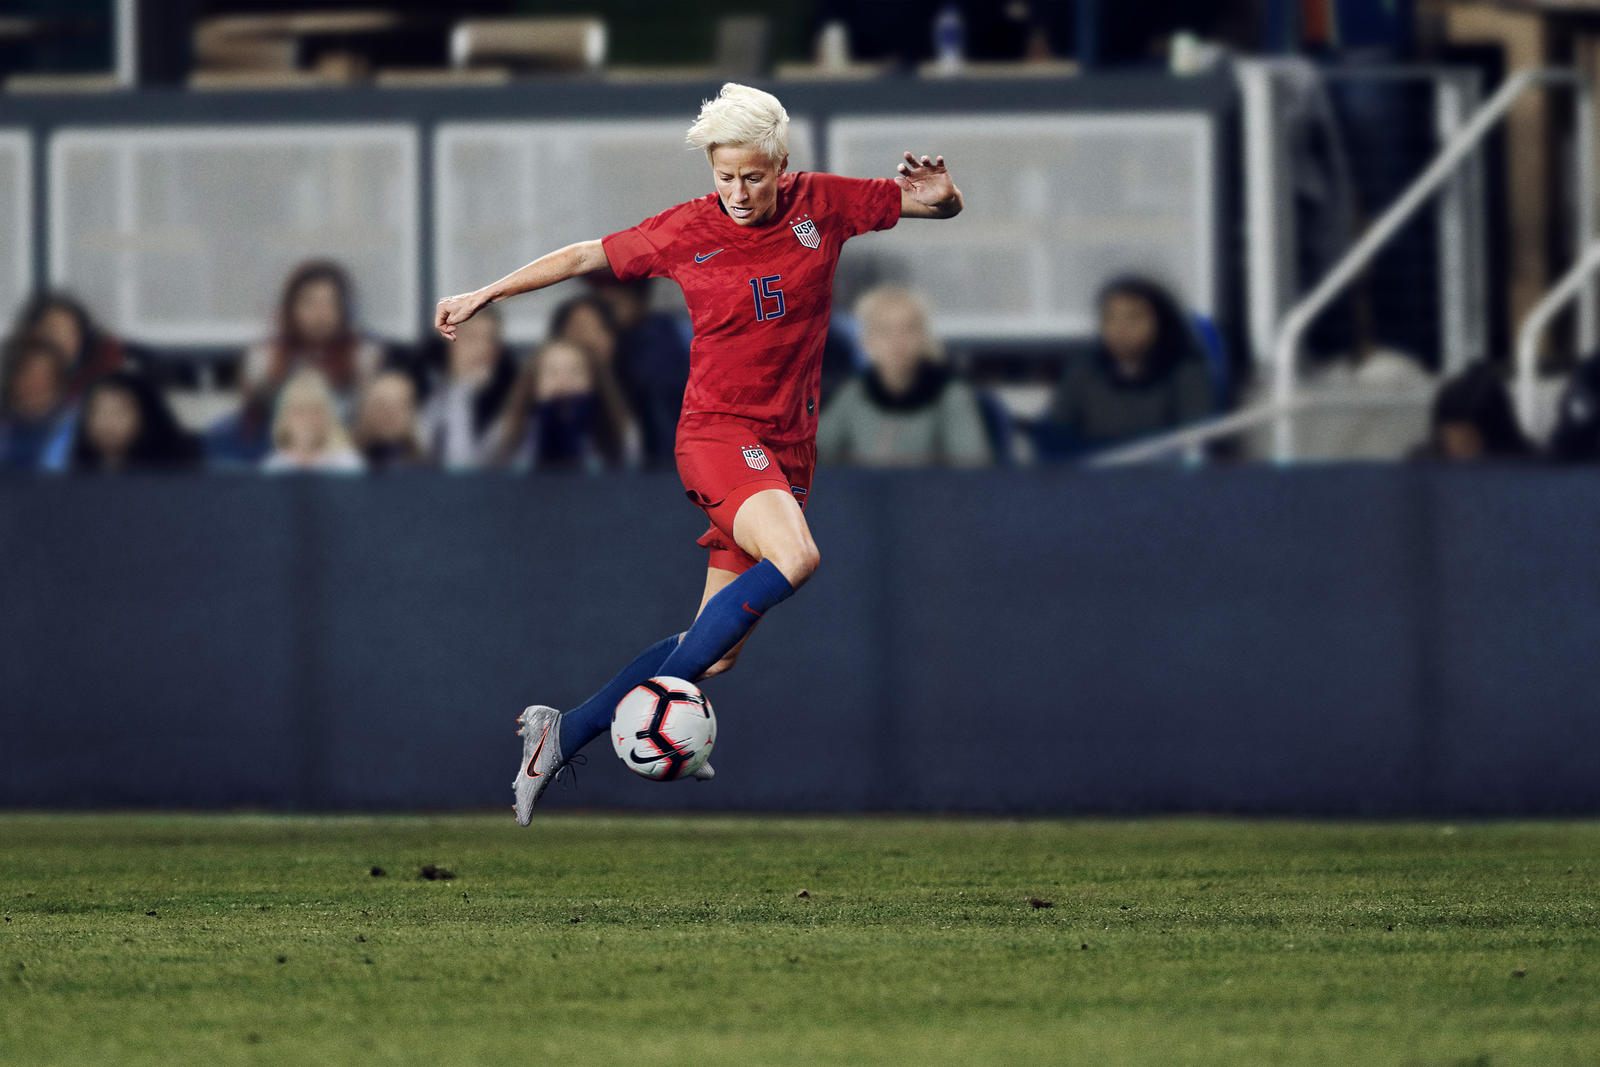 usa-national-team-kit-2019-performance-002_85968.jpg